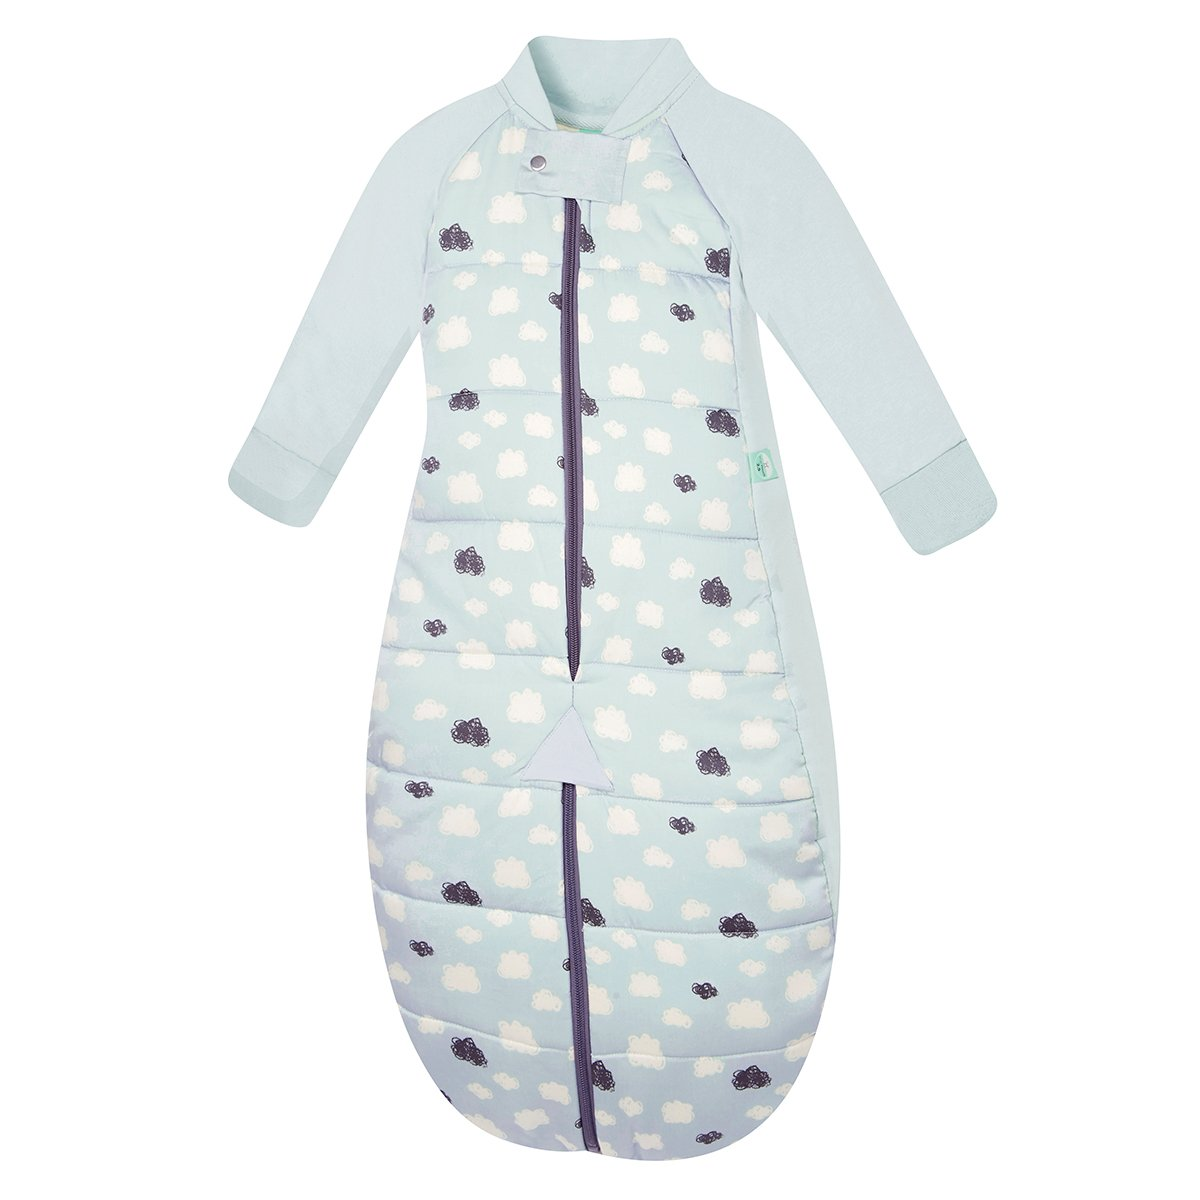 Quantity limited ergoPouch Reservation 2.5 TOG Sleep Suit Bag Organic Cotton Filling 100% wit